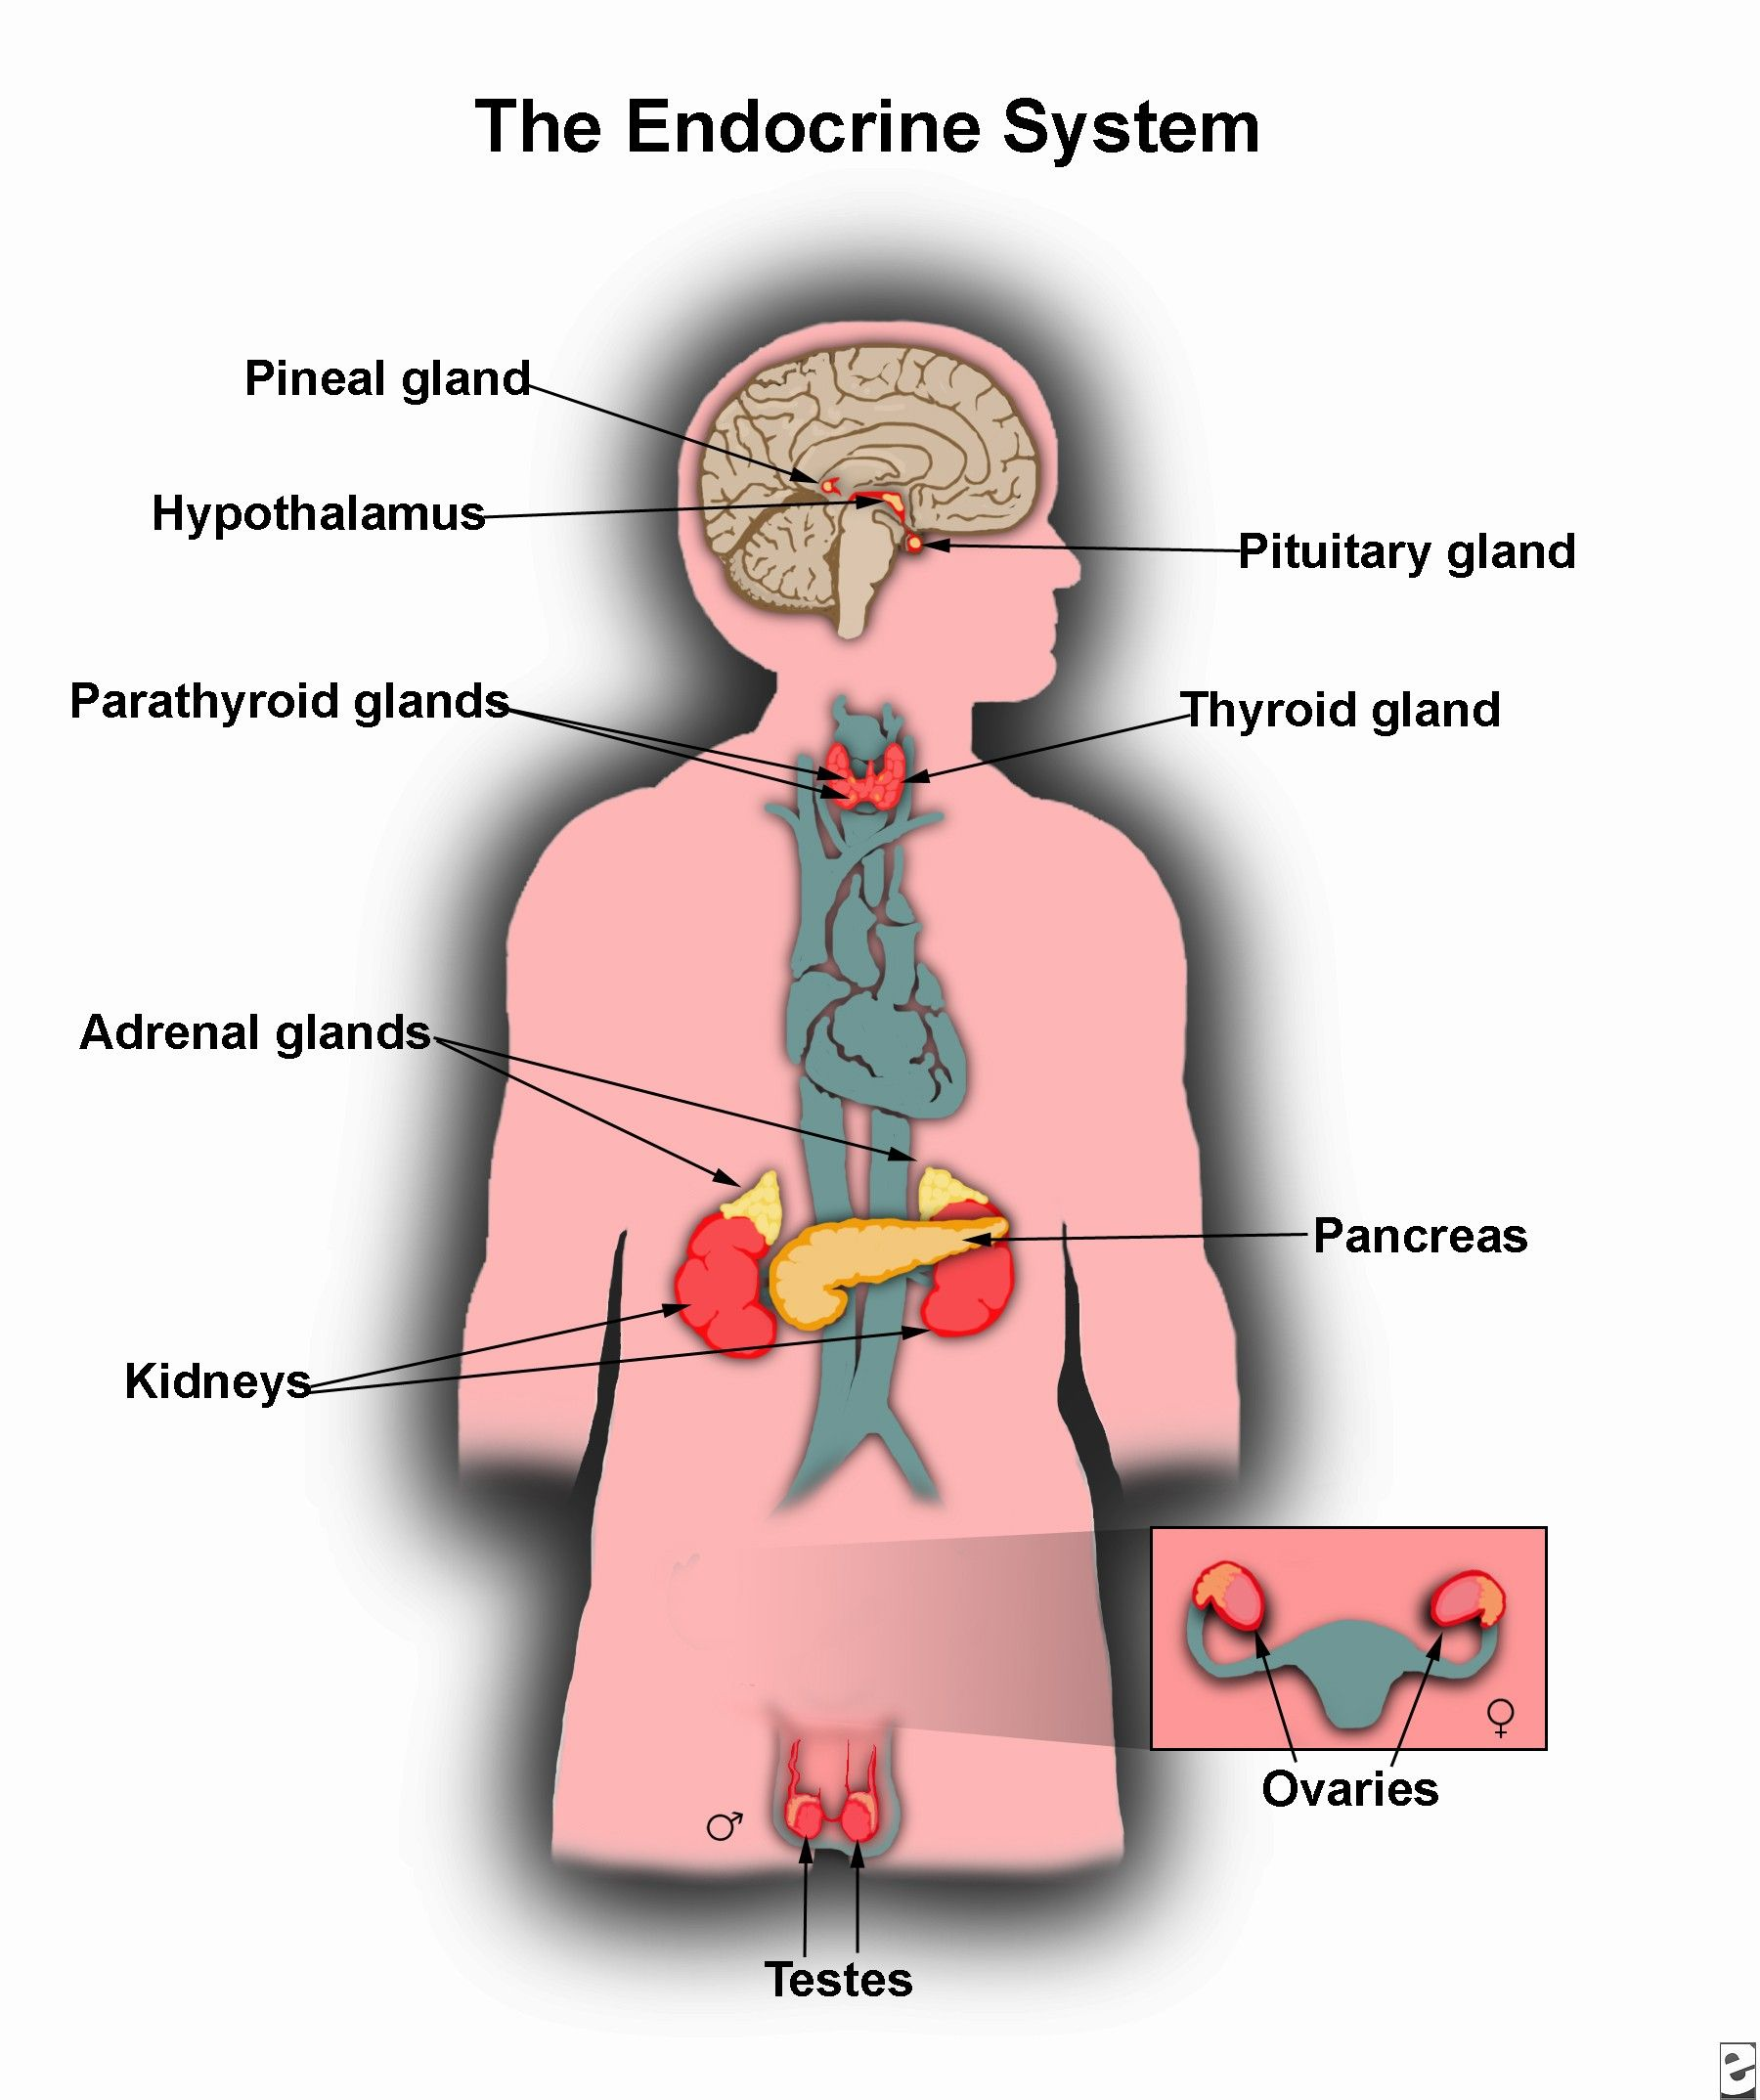 Endocrine System Discover The Anatomy And Function Of Glands The Endocrine System Includes All